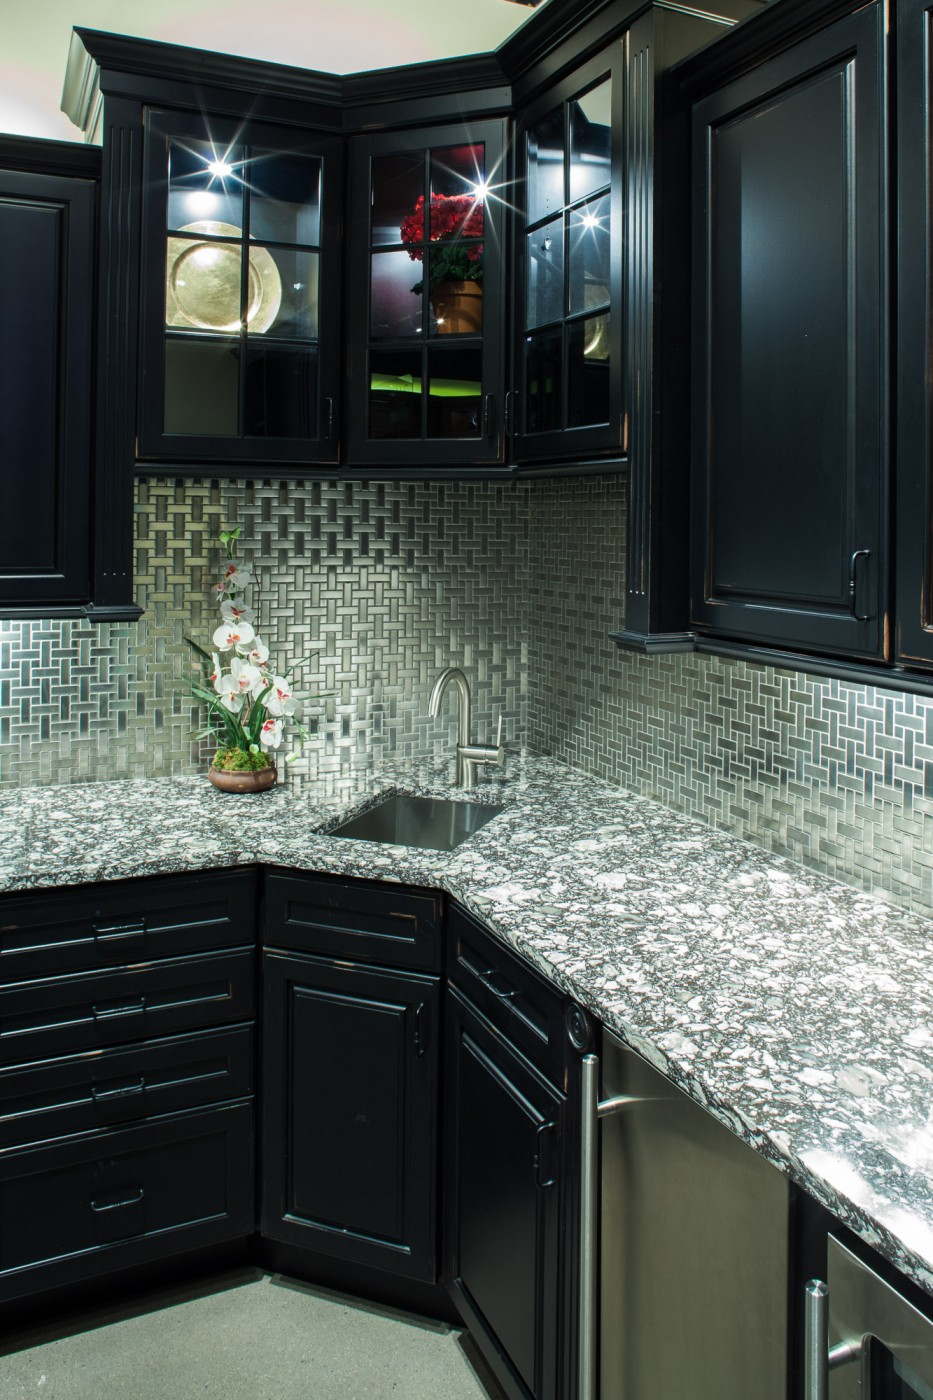 Kitchen Countertops: Commercial